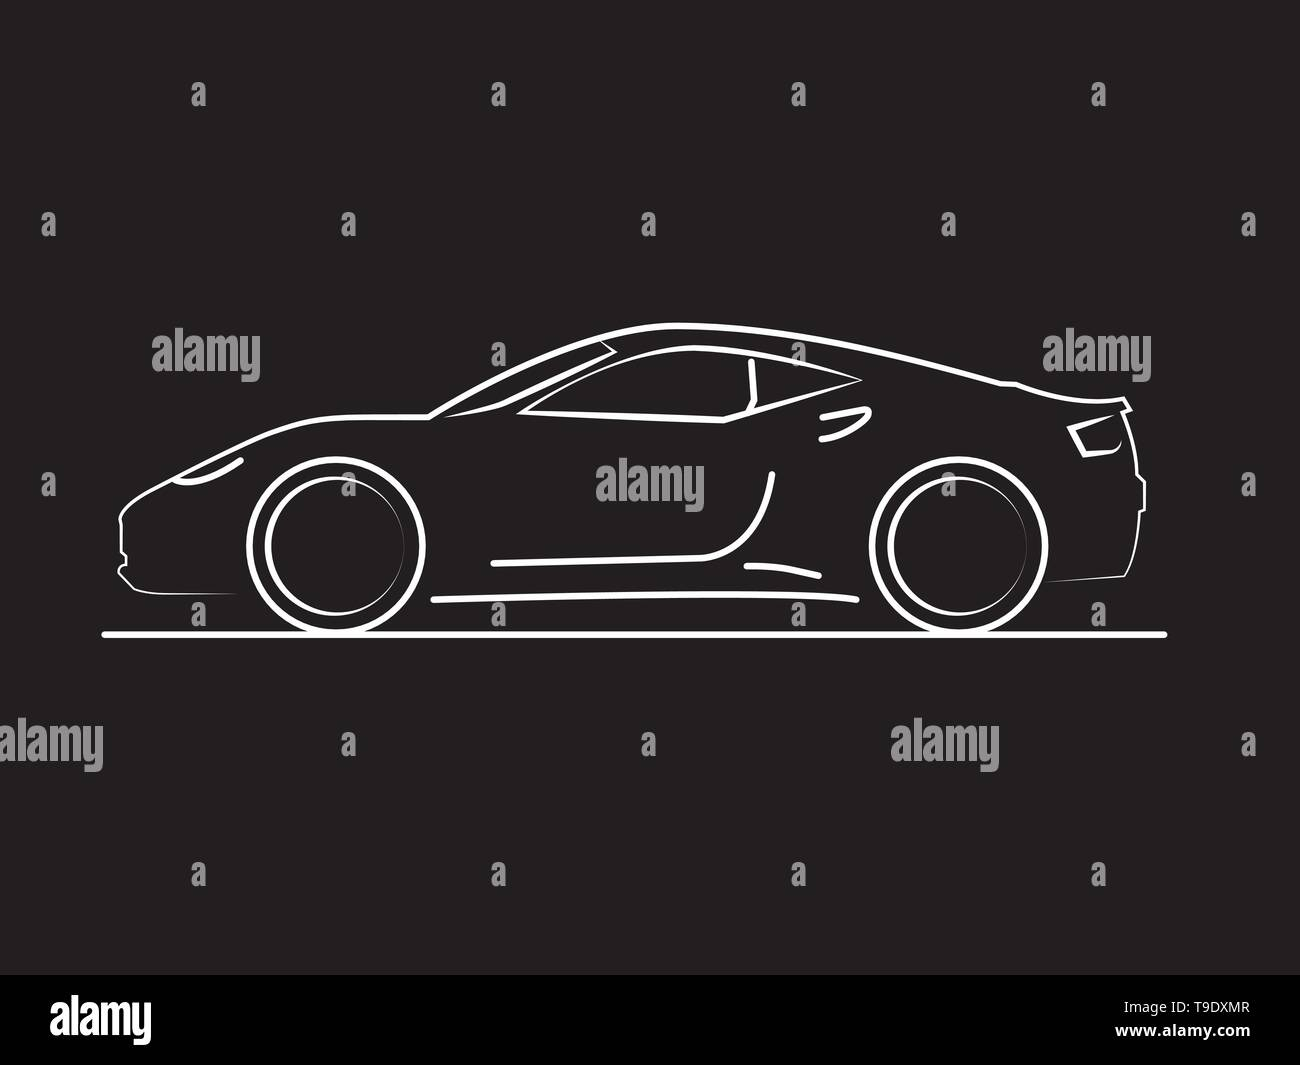 Car side view line drawing on black background in vector format. - Stock Image